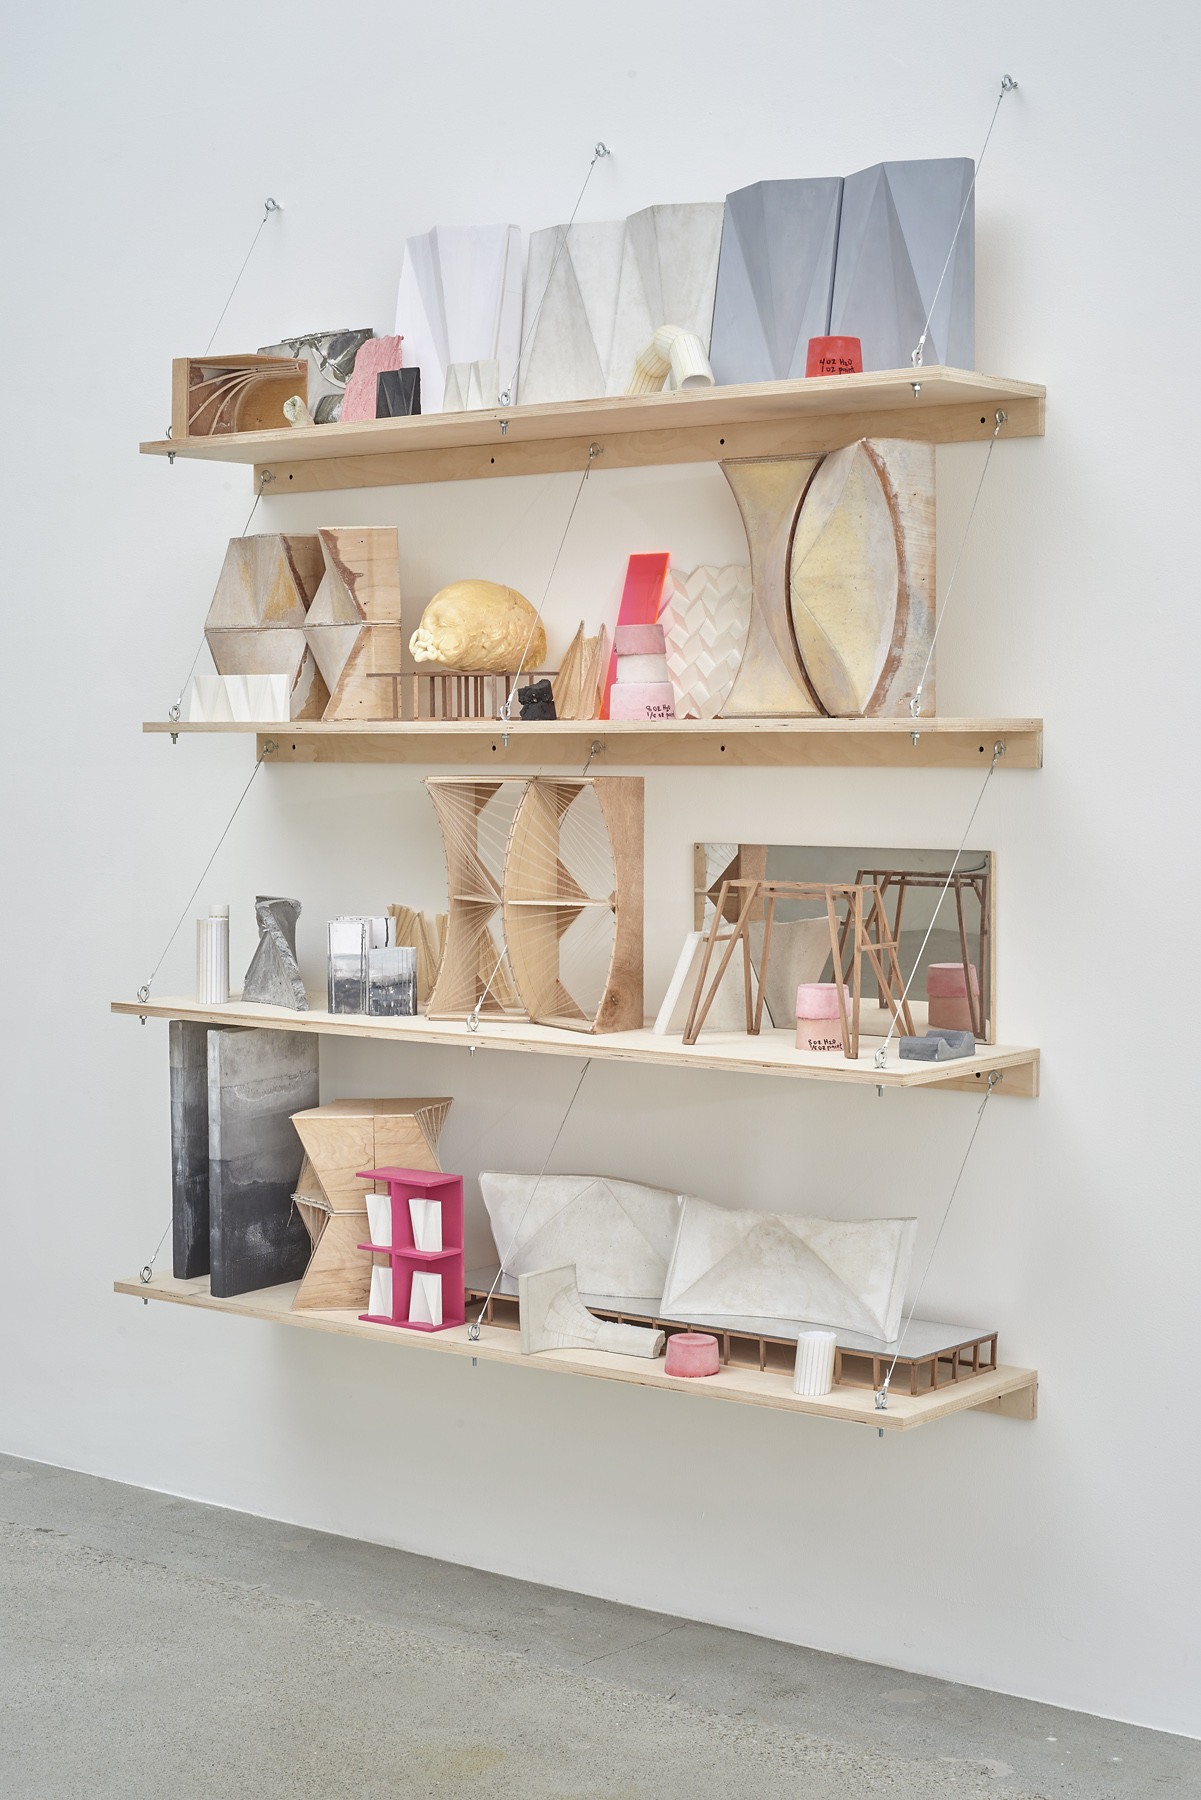 74.Hoeber_Form Index, 2015_Materials variable_Installed dimensions variable; Shelving unit - 72x60x14 in_alt view